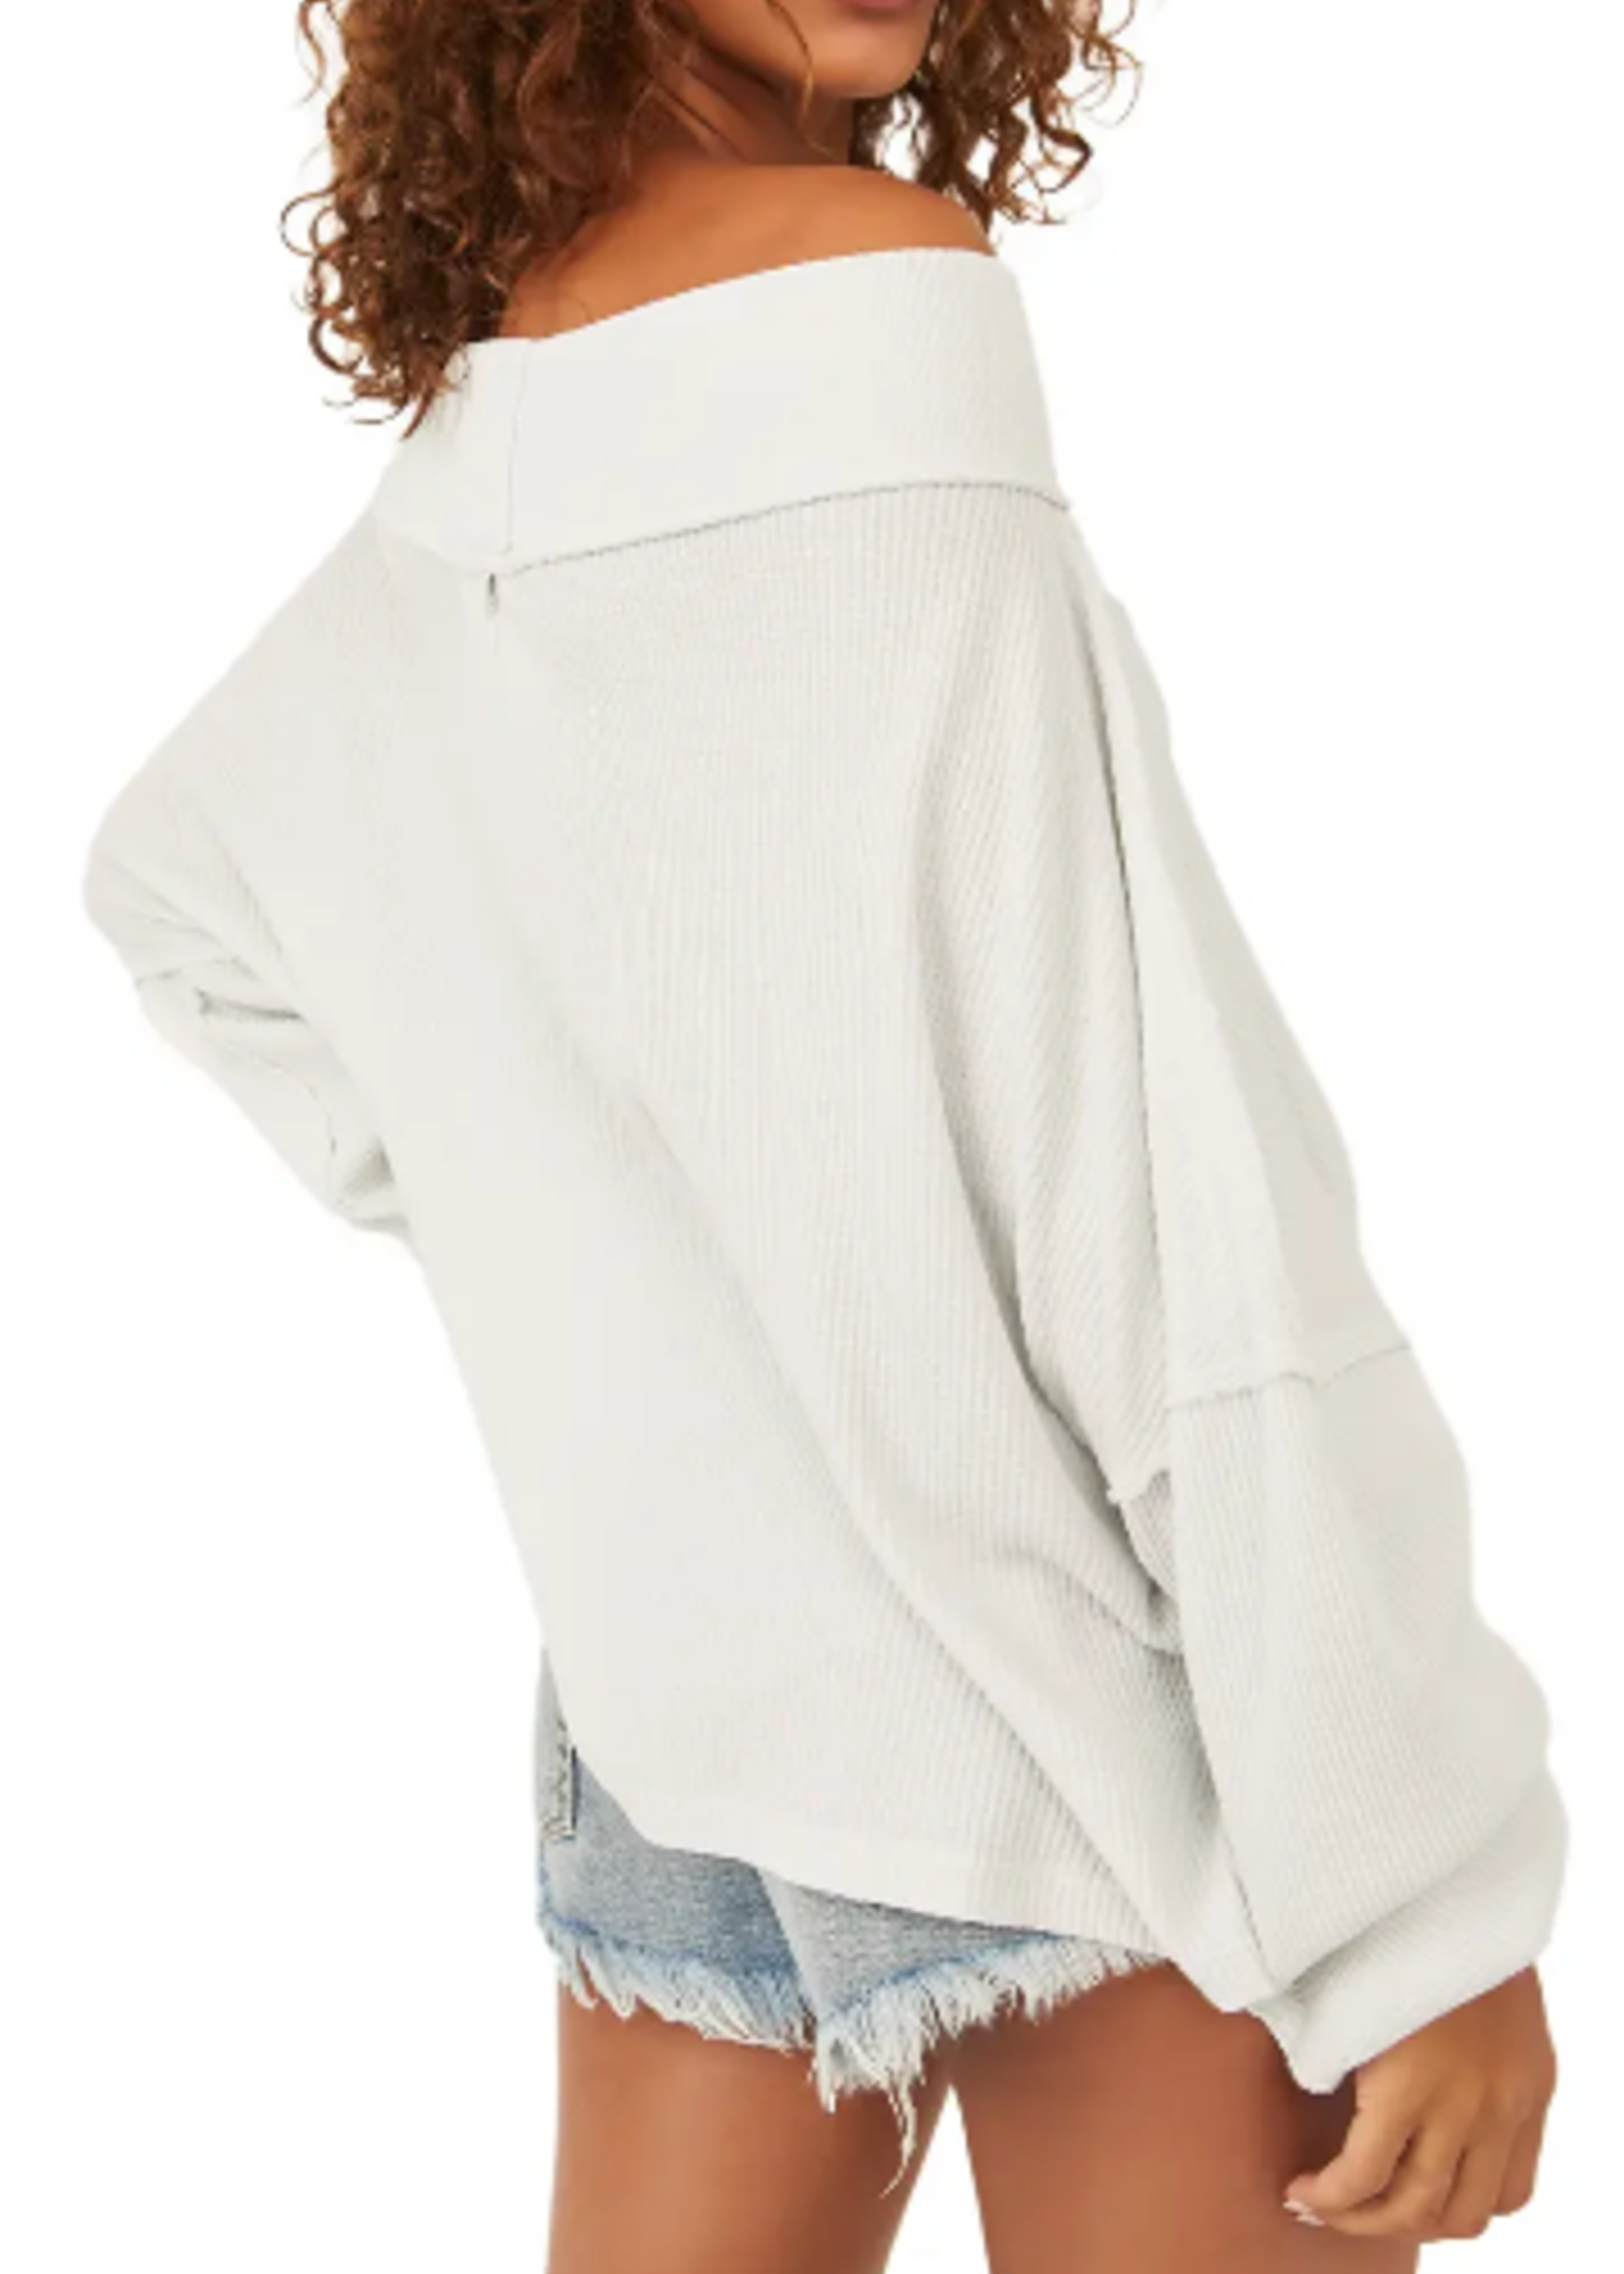 Free People Close to you Top